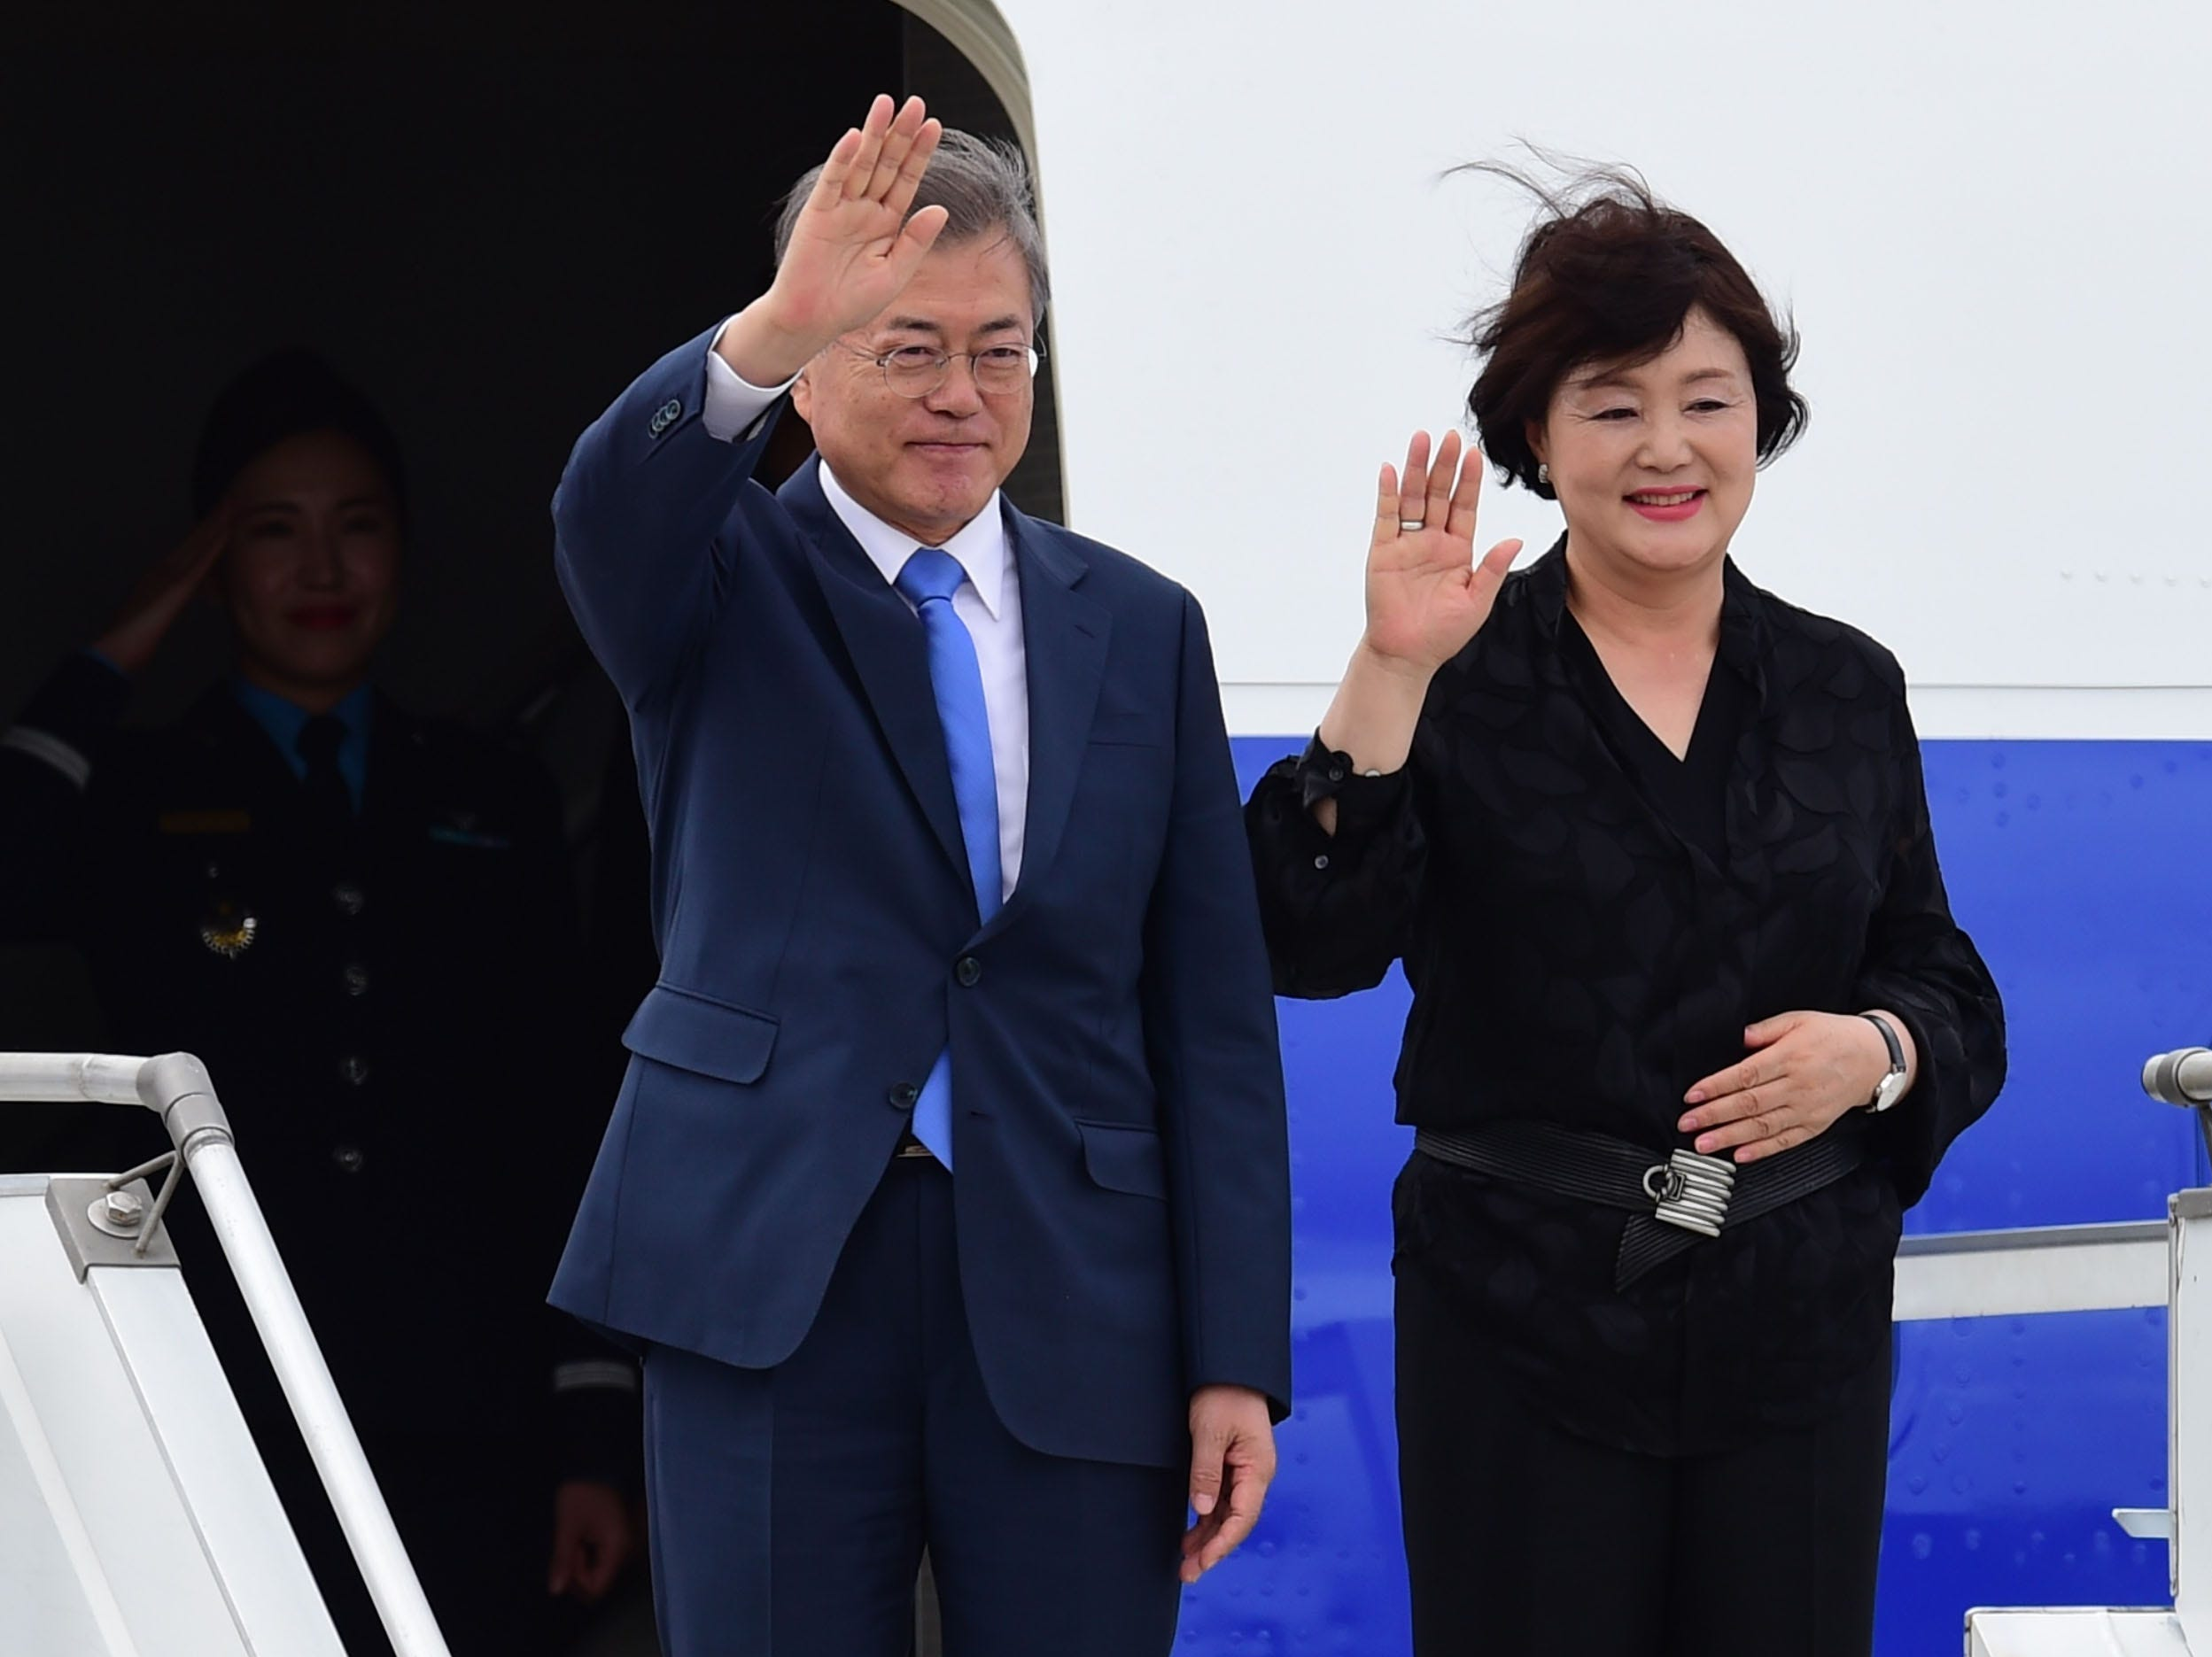 South Korea's President Moon Jae-in  (L) and his wife Kim Jung-sook, wave upon arrival at Ezeiza International airport in Buenos Aires province, on November 29, 2018. - Global leaders gather in the Argentine capital for a two-day G20 summit beginning on Friday likely to be dominated by simmering international tensions over trade. (Photo by MARTIN BERNETTI / AFP)        (Photo credit should read MARTIN BERNETTI/AFP/Getty Images)